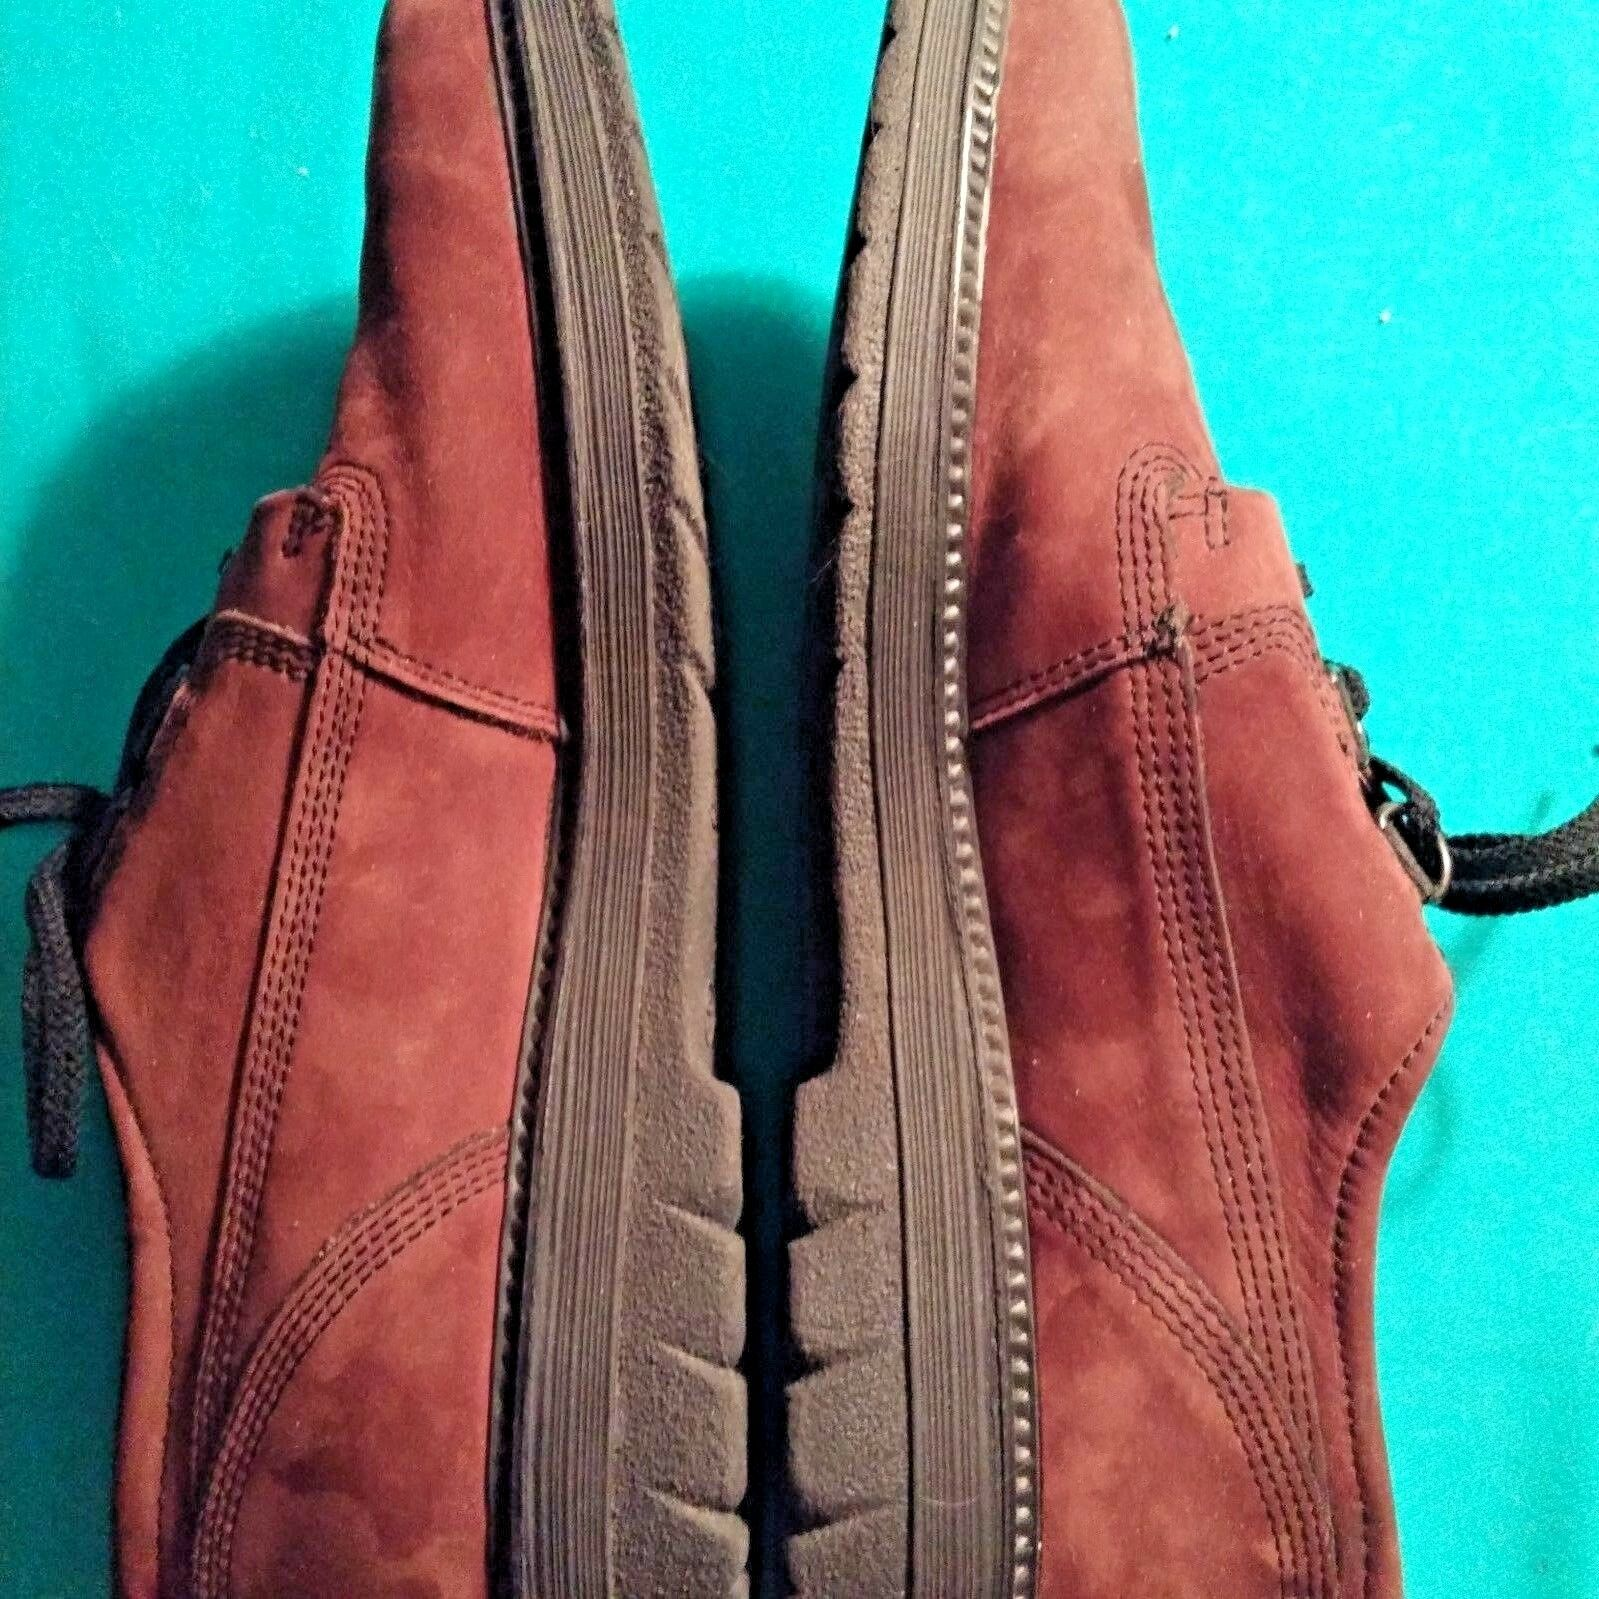 ECCO Donna  9 EU40 Brown Suede Oxford Shoes 3 Eye Eye 3 Lace-Up Portugal Rubber Sole d014a4